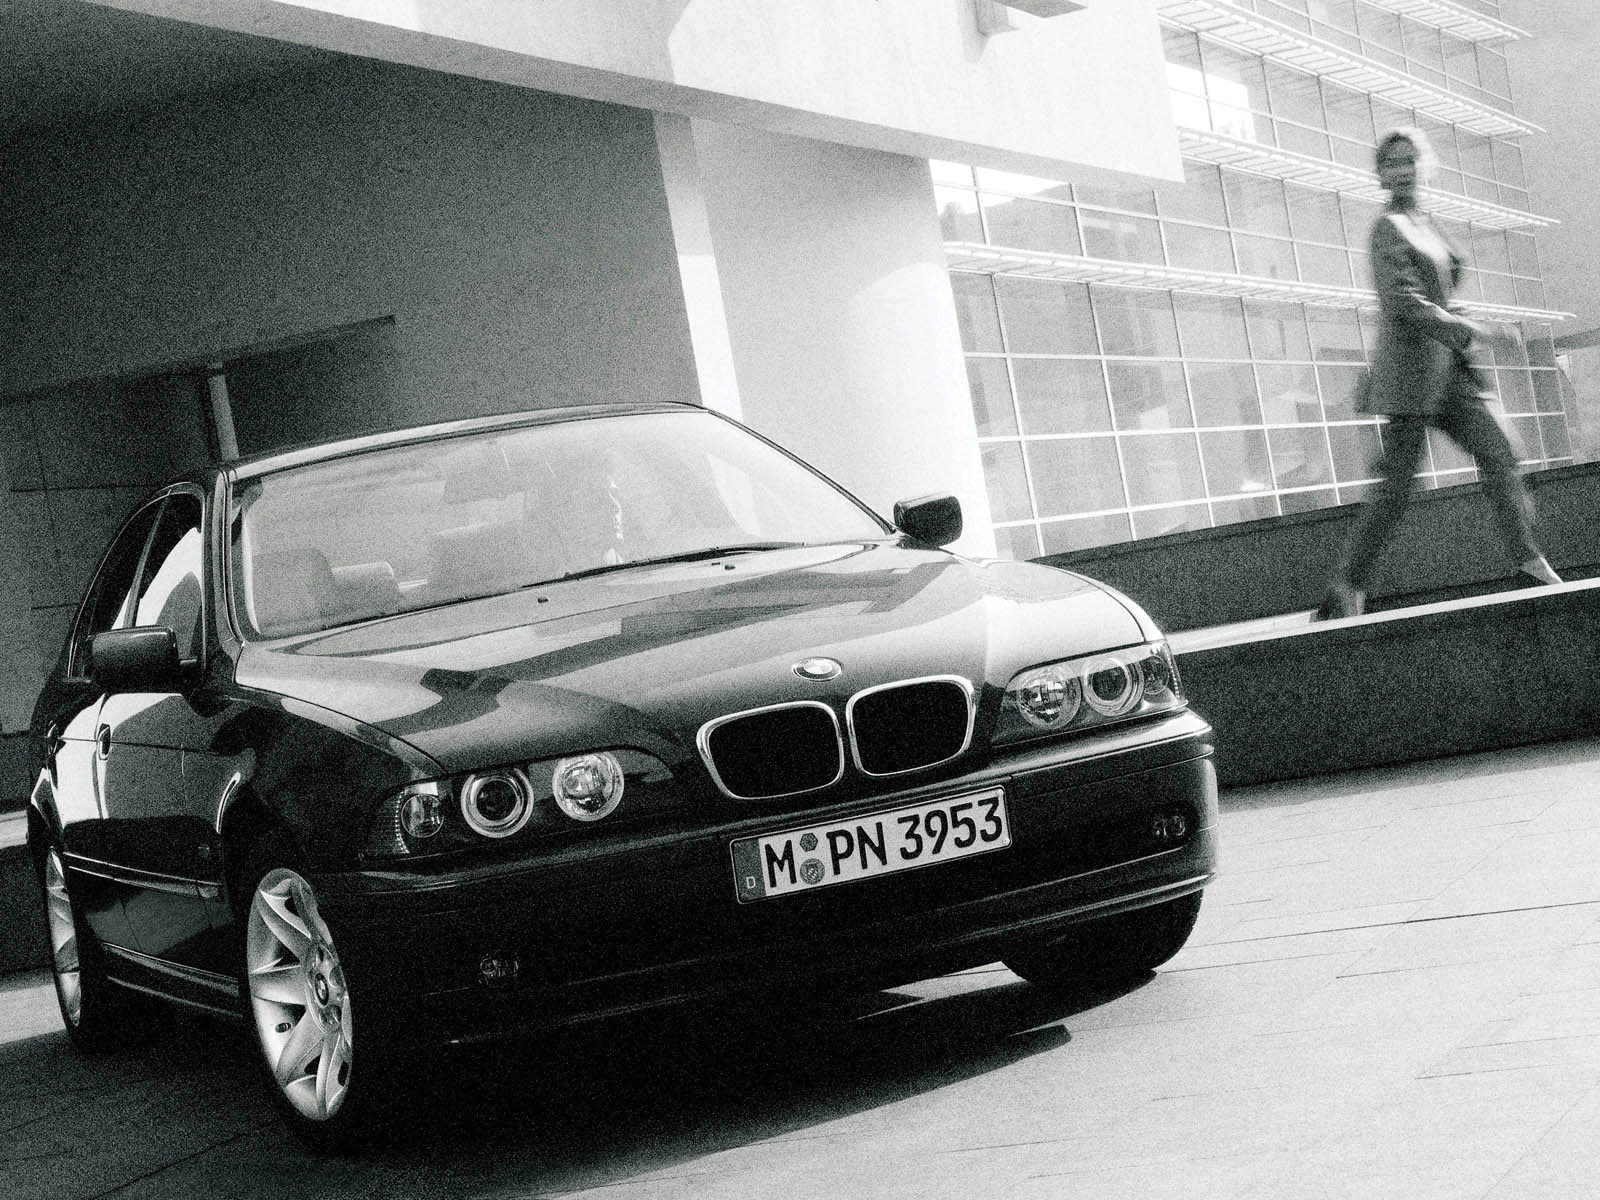 Bmw 5 Series 525i Sedan E39 2000 2003 Photo 01 Car In Pictures Car Photo Gallery